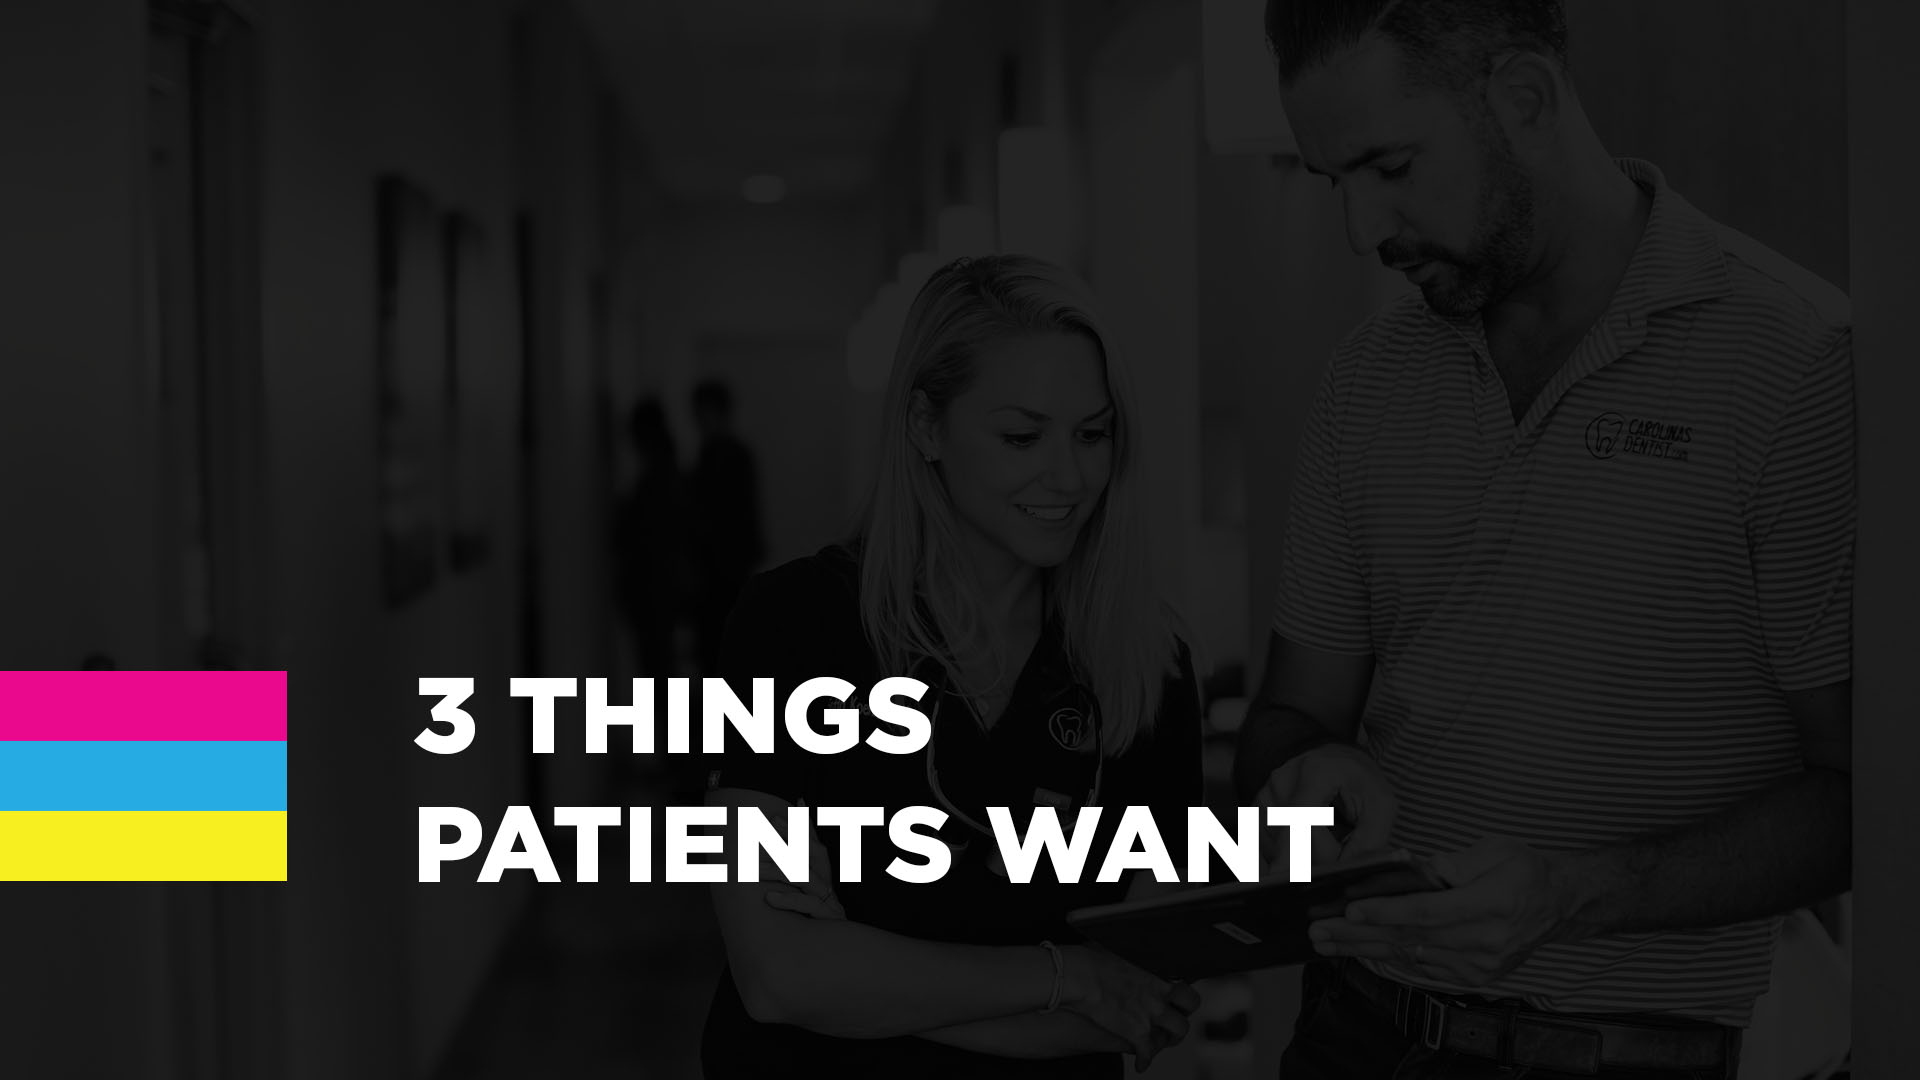 3 Things Patients Want